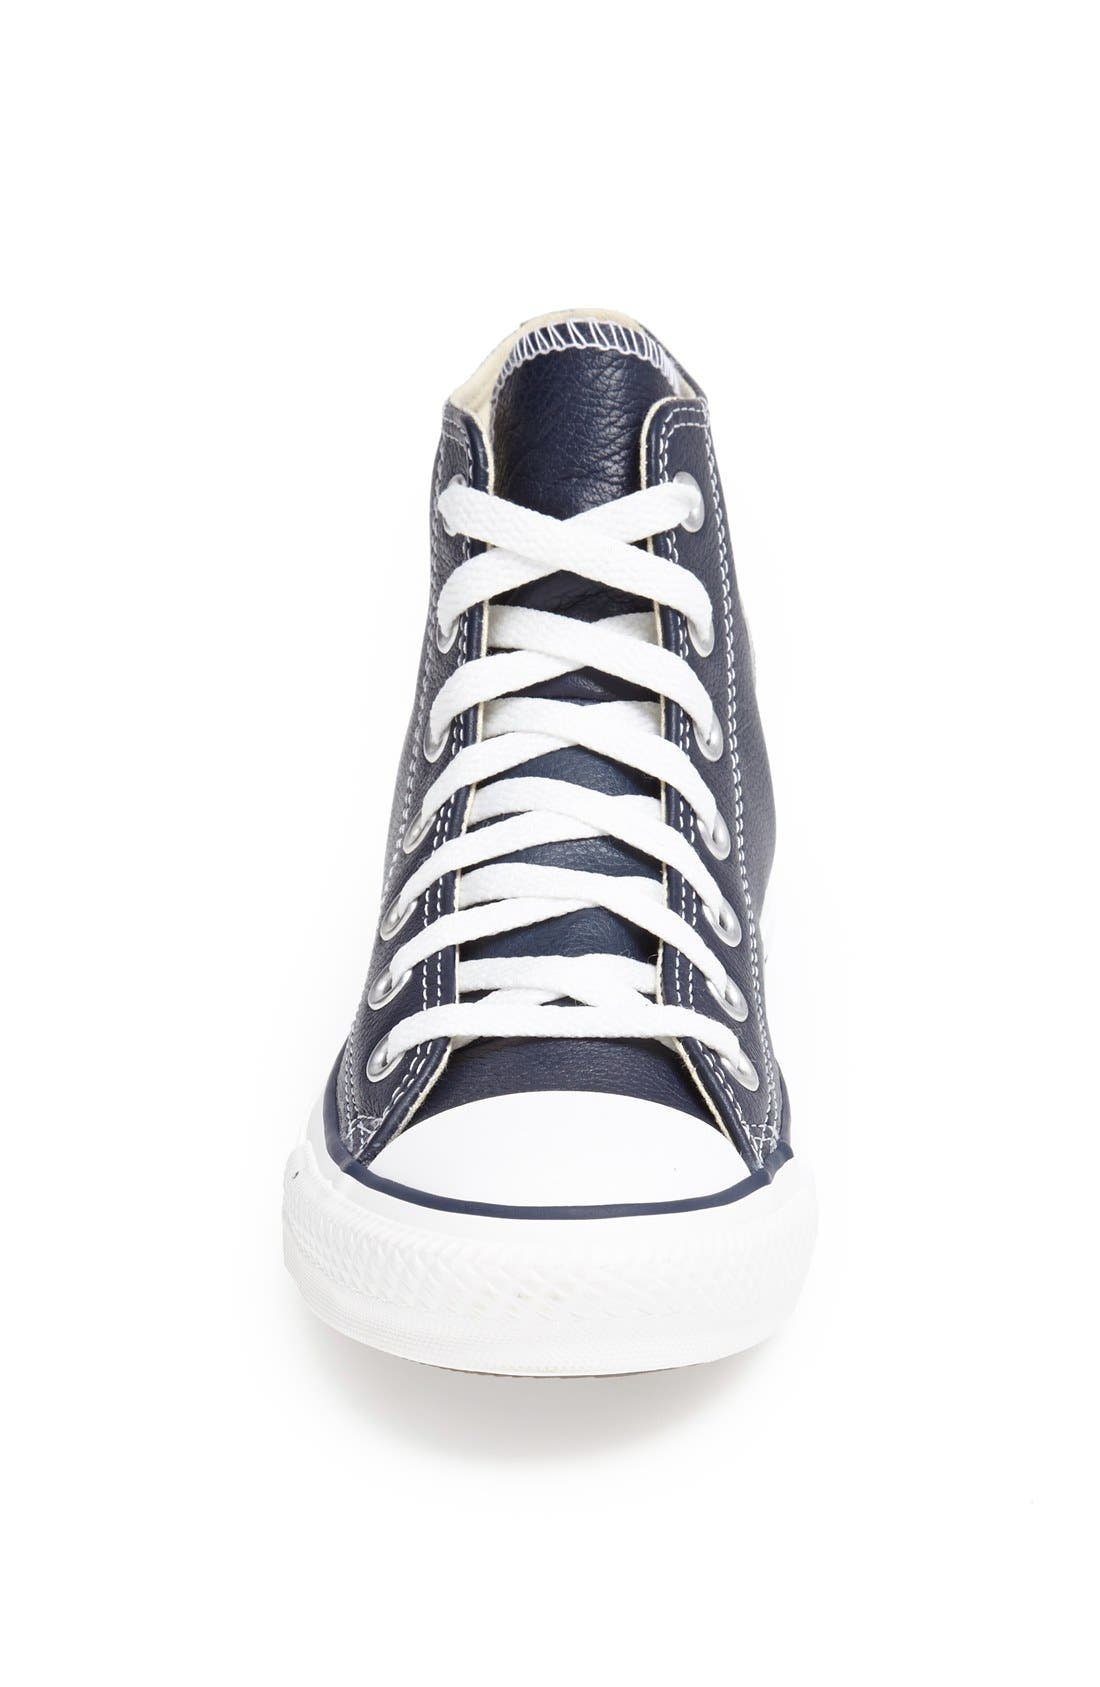 Alternate Image 3  - Converse Chuck Taylor® All Star® Leather High Top Sneaker (Women)